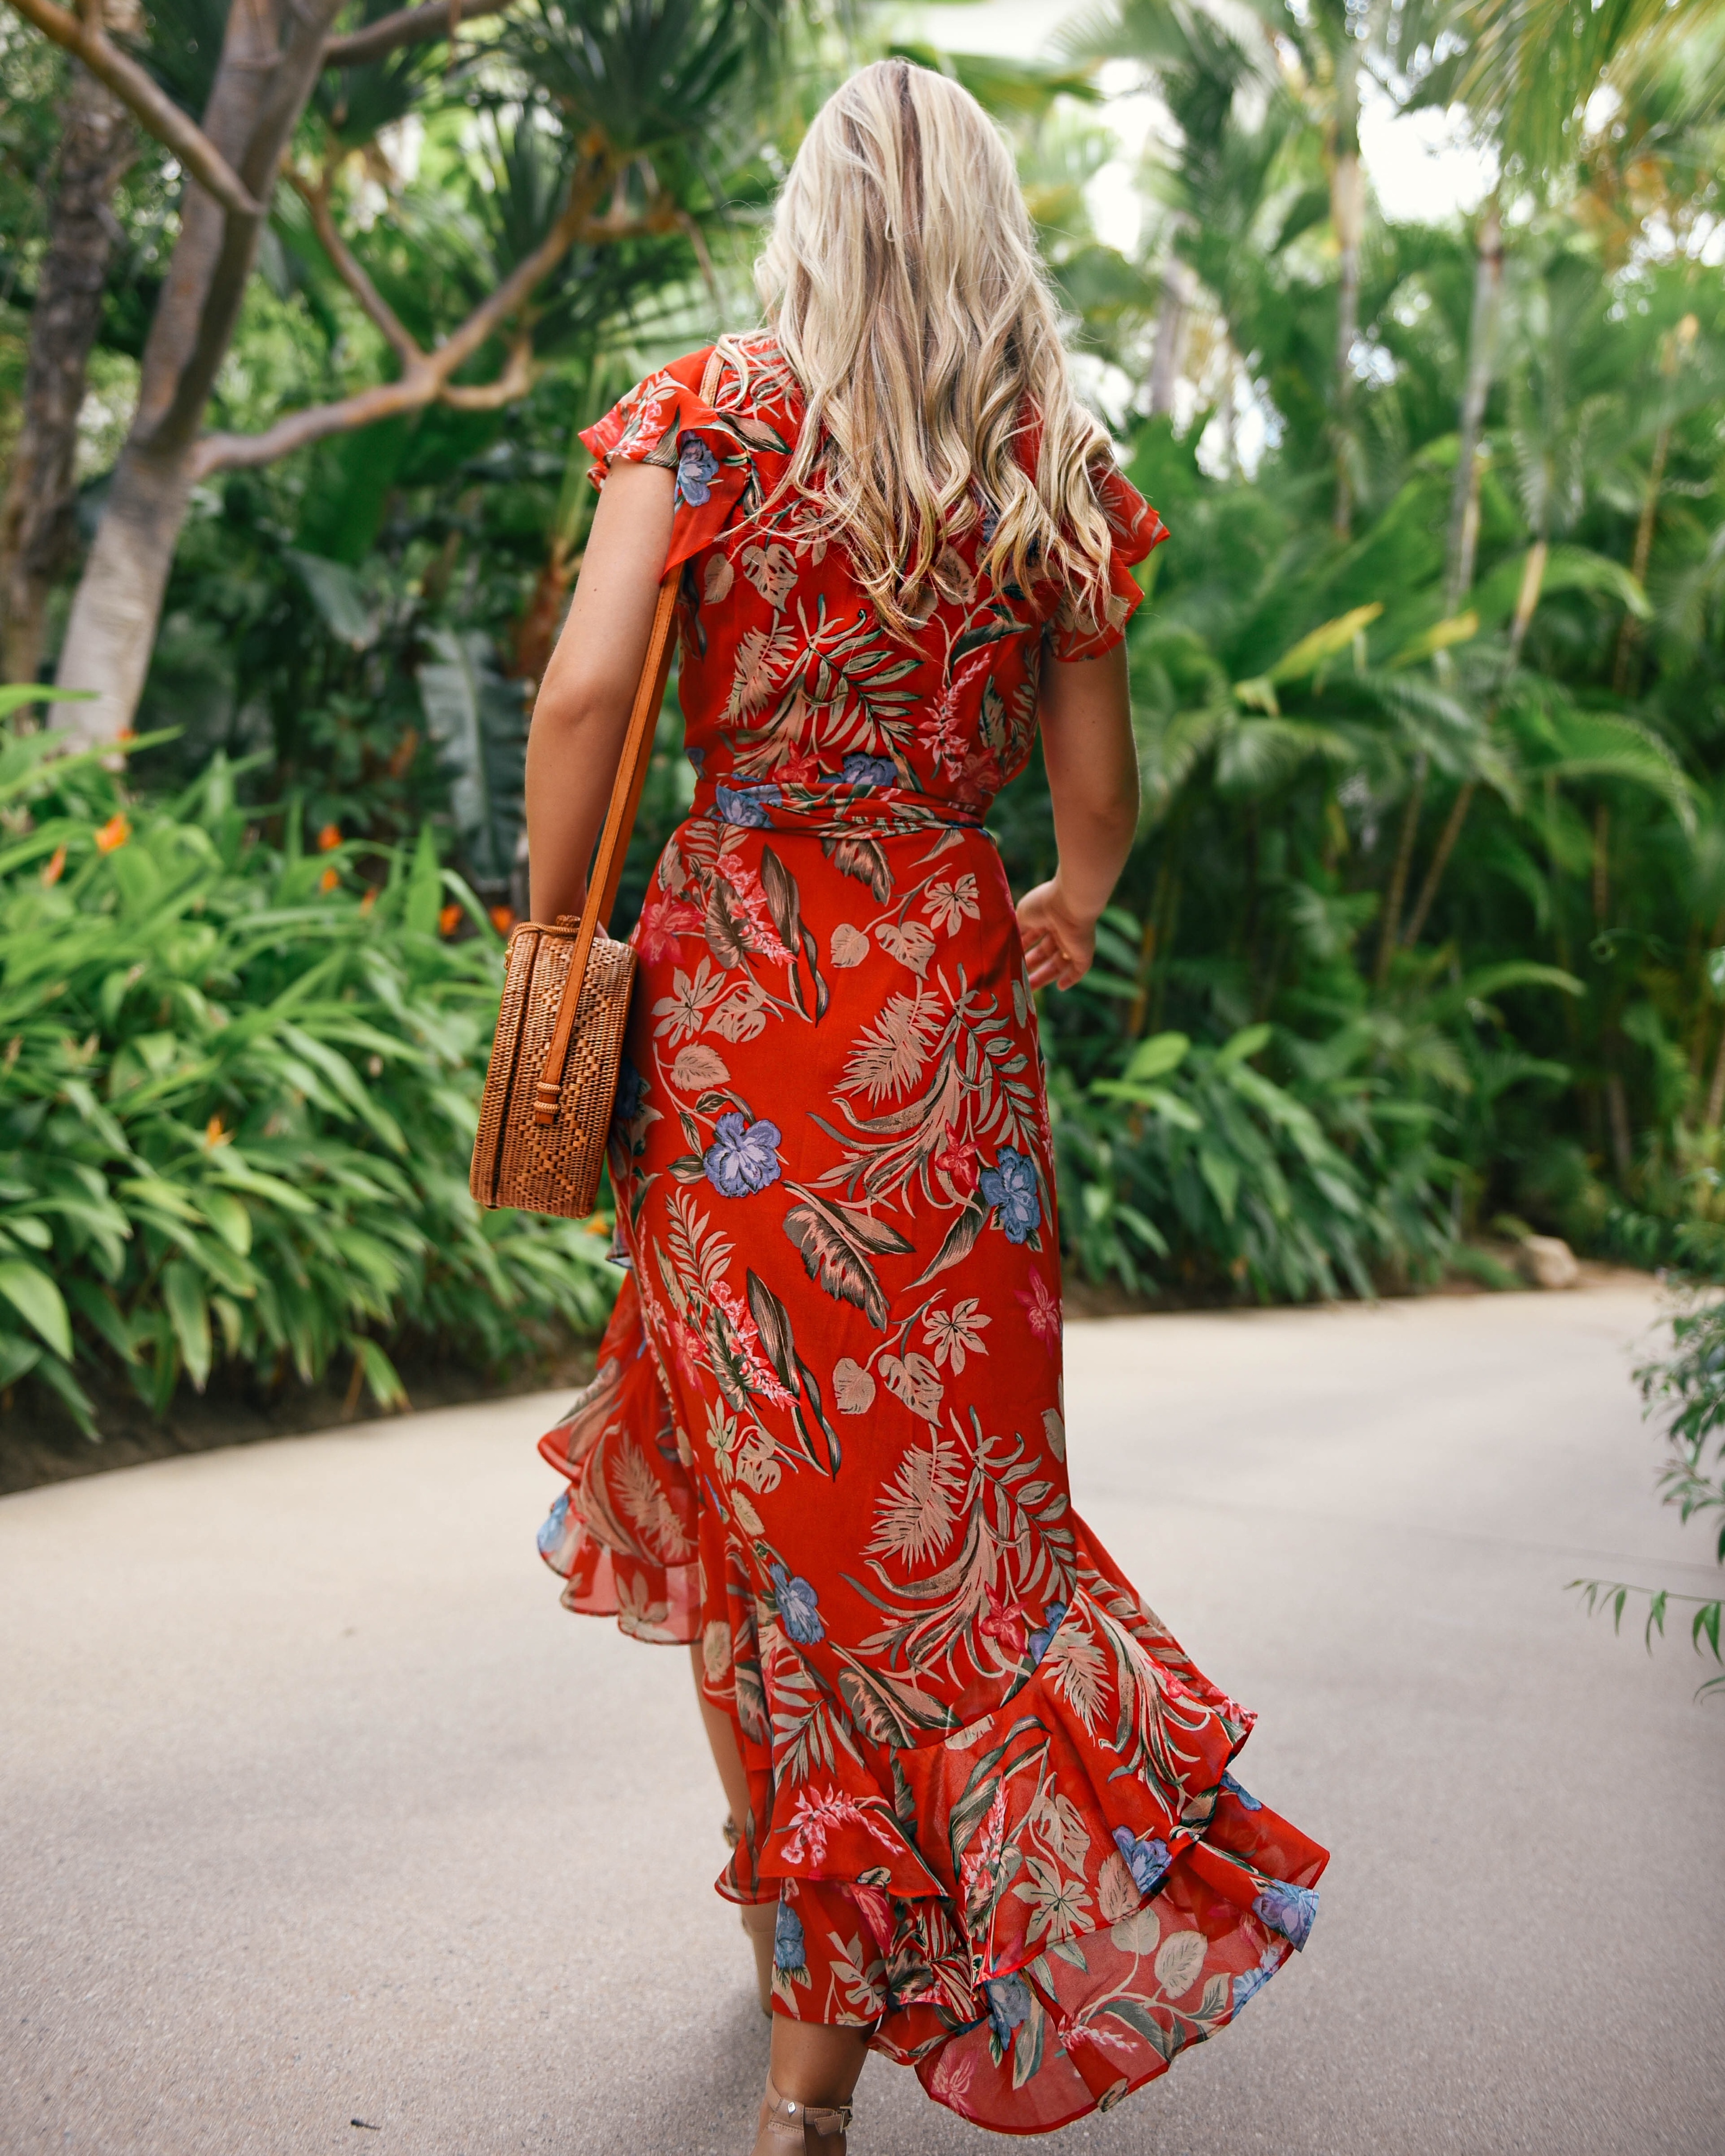 WAYF-Floral-Dress-Lo-Murphy-Woven-Bag-Kendra-Scott-Earrings-Red-Dress-Under-100-travel-blogger-Cabo